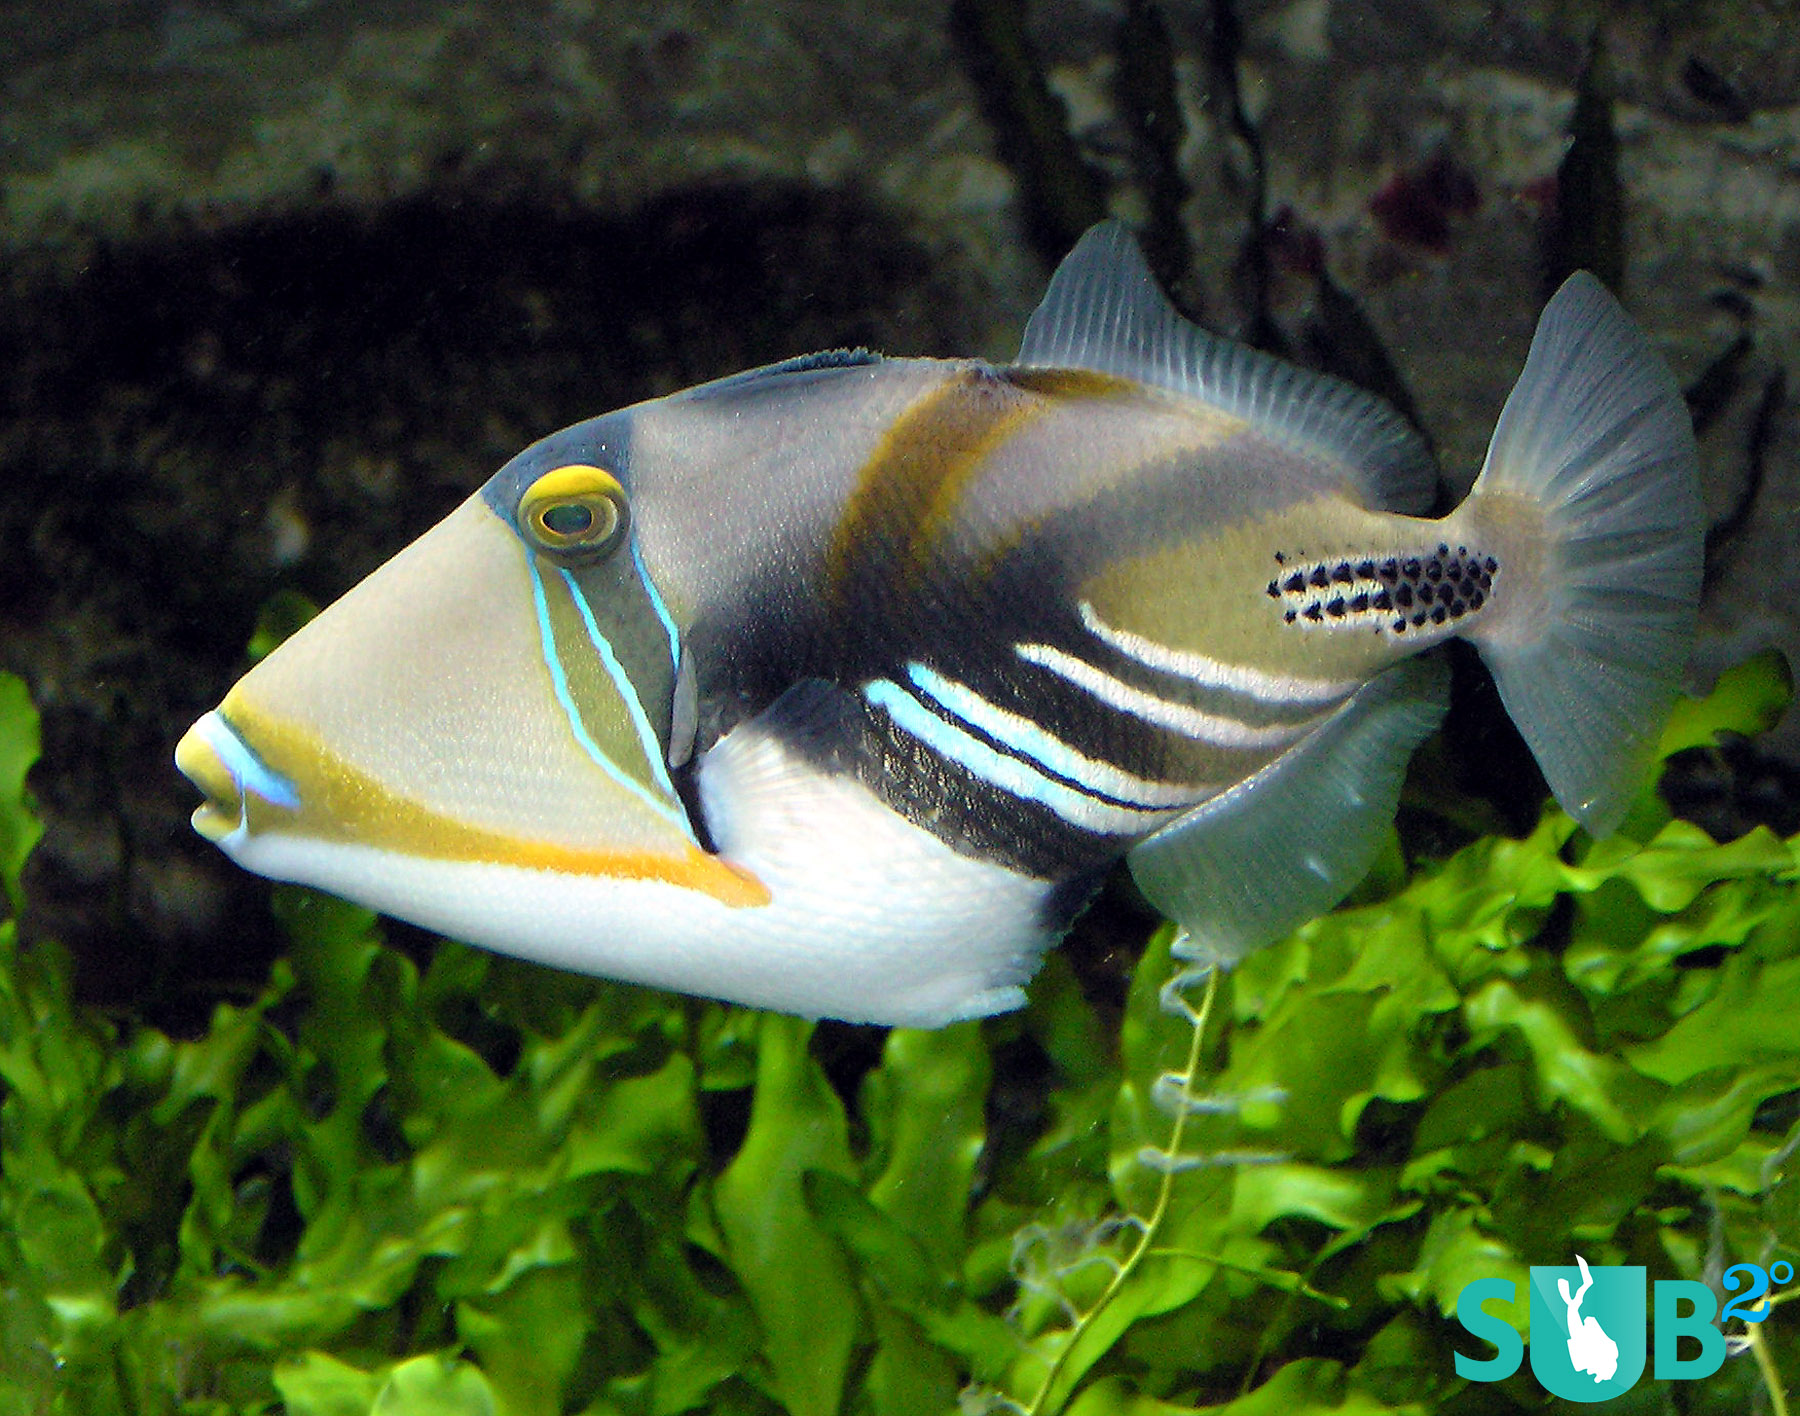 Just hearing the name Picasso Triggerfish is enough to tell you that this fish is a work of art.